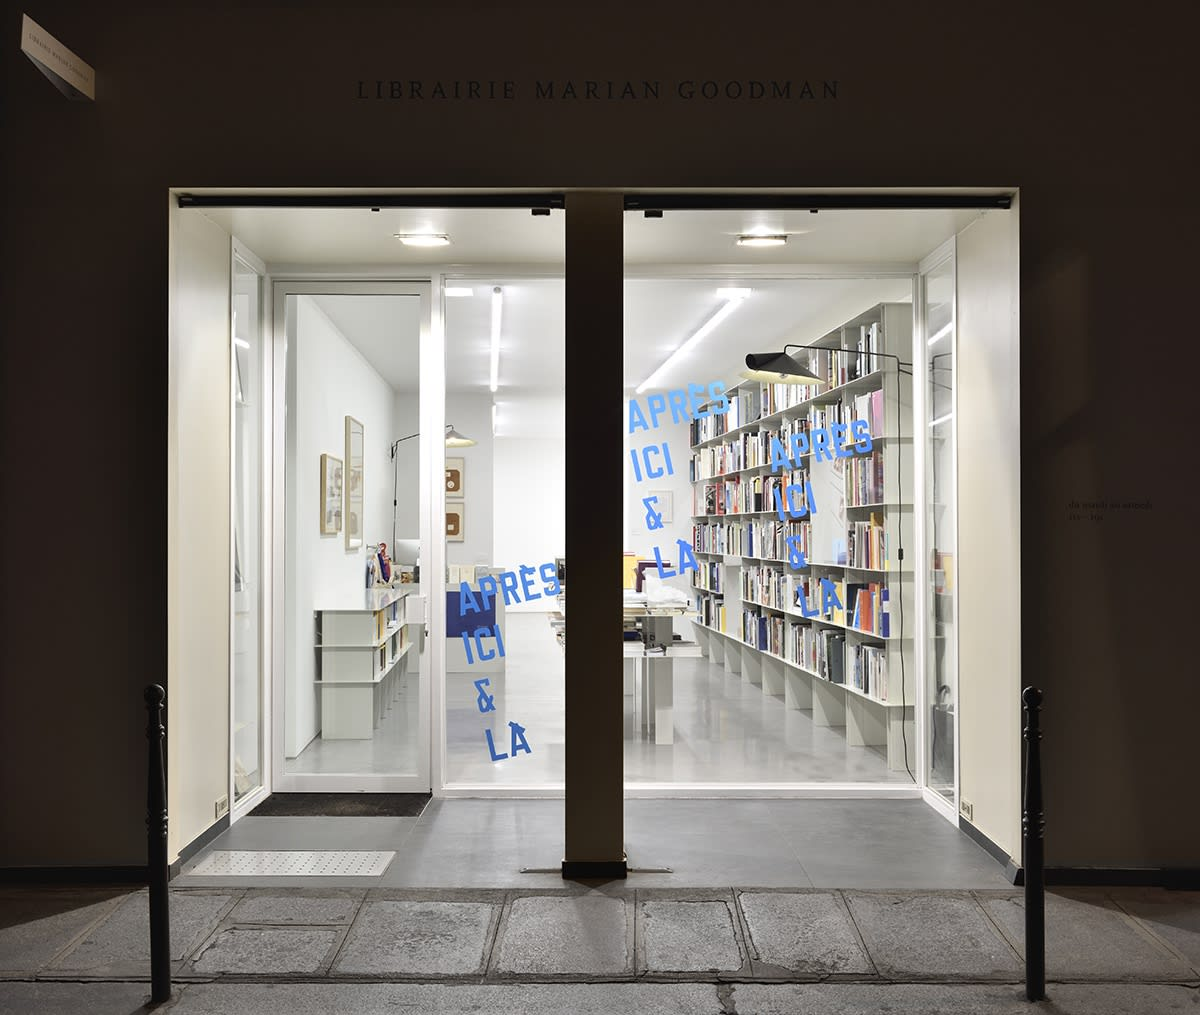 View of the librairie lit up from the interior as seen from the street at night.